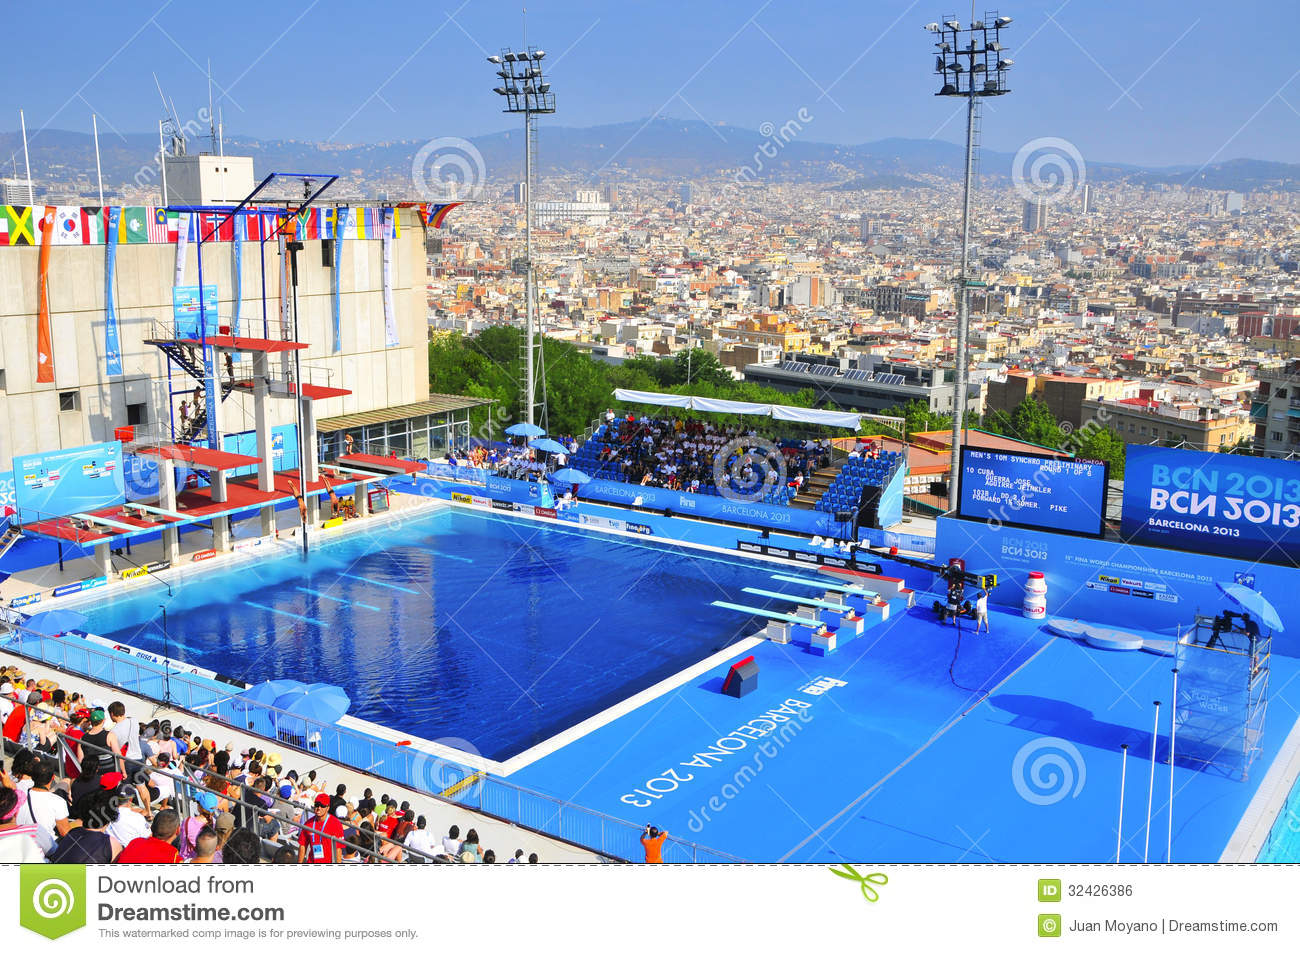 2013 world aquatics championships in barcelona spain editorial photo image 32426386 - Piscina en barcelona ...